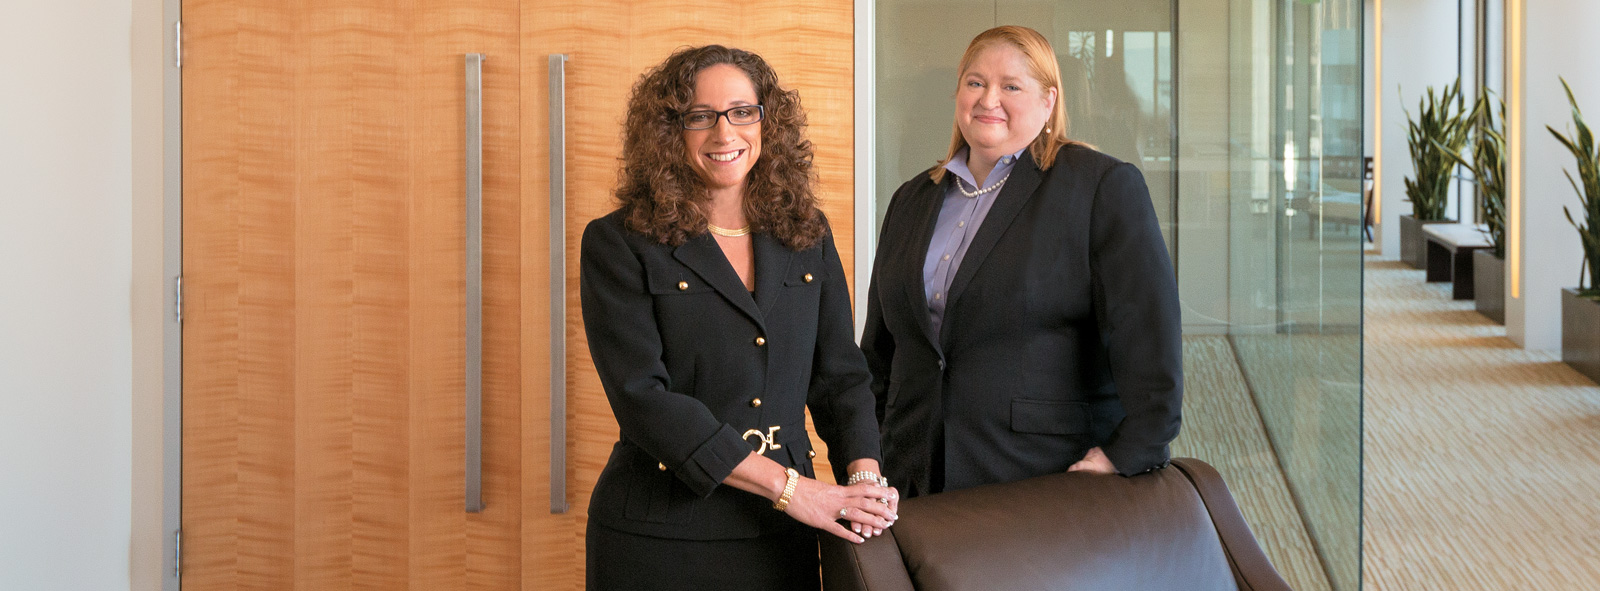 Image of First Republic Law Firms / Attorneys client(s) Kaye Moser Hierbaum Ford LLP Family Law